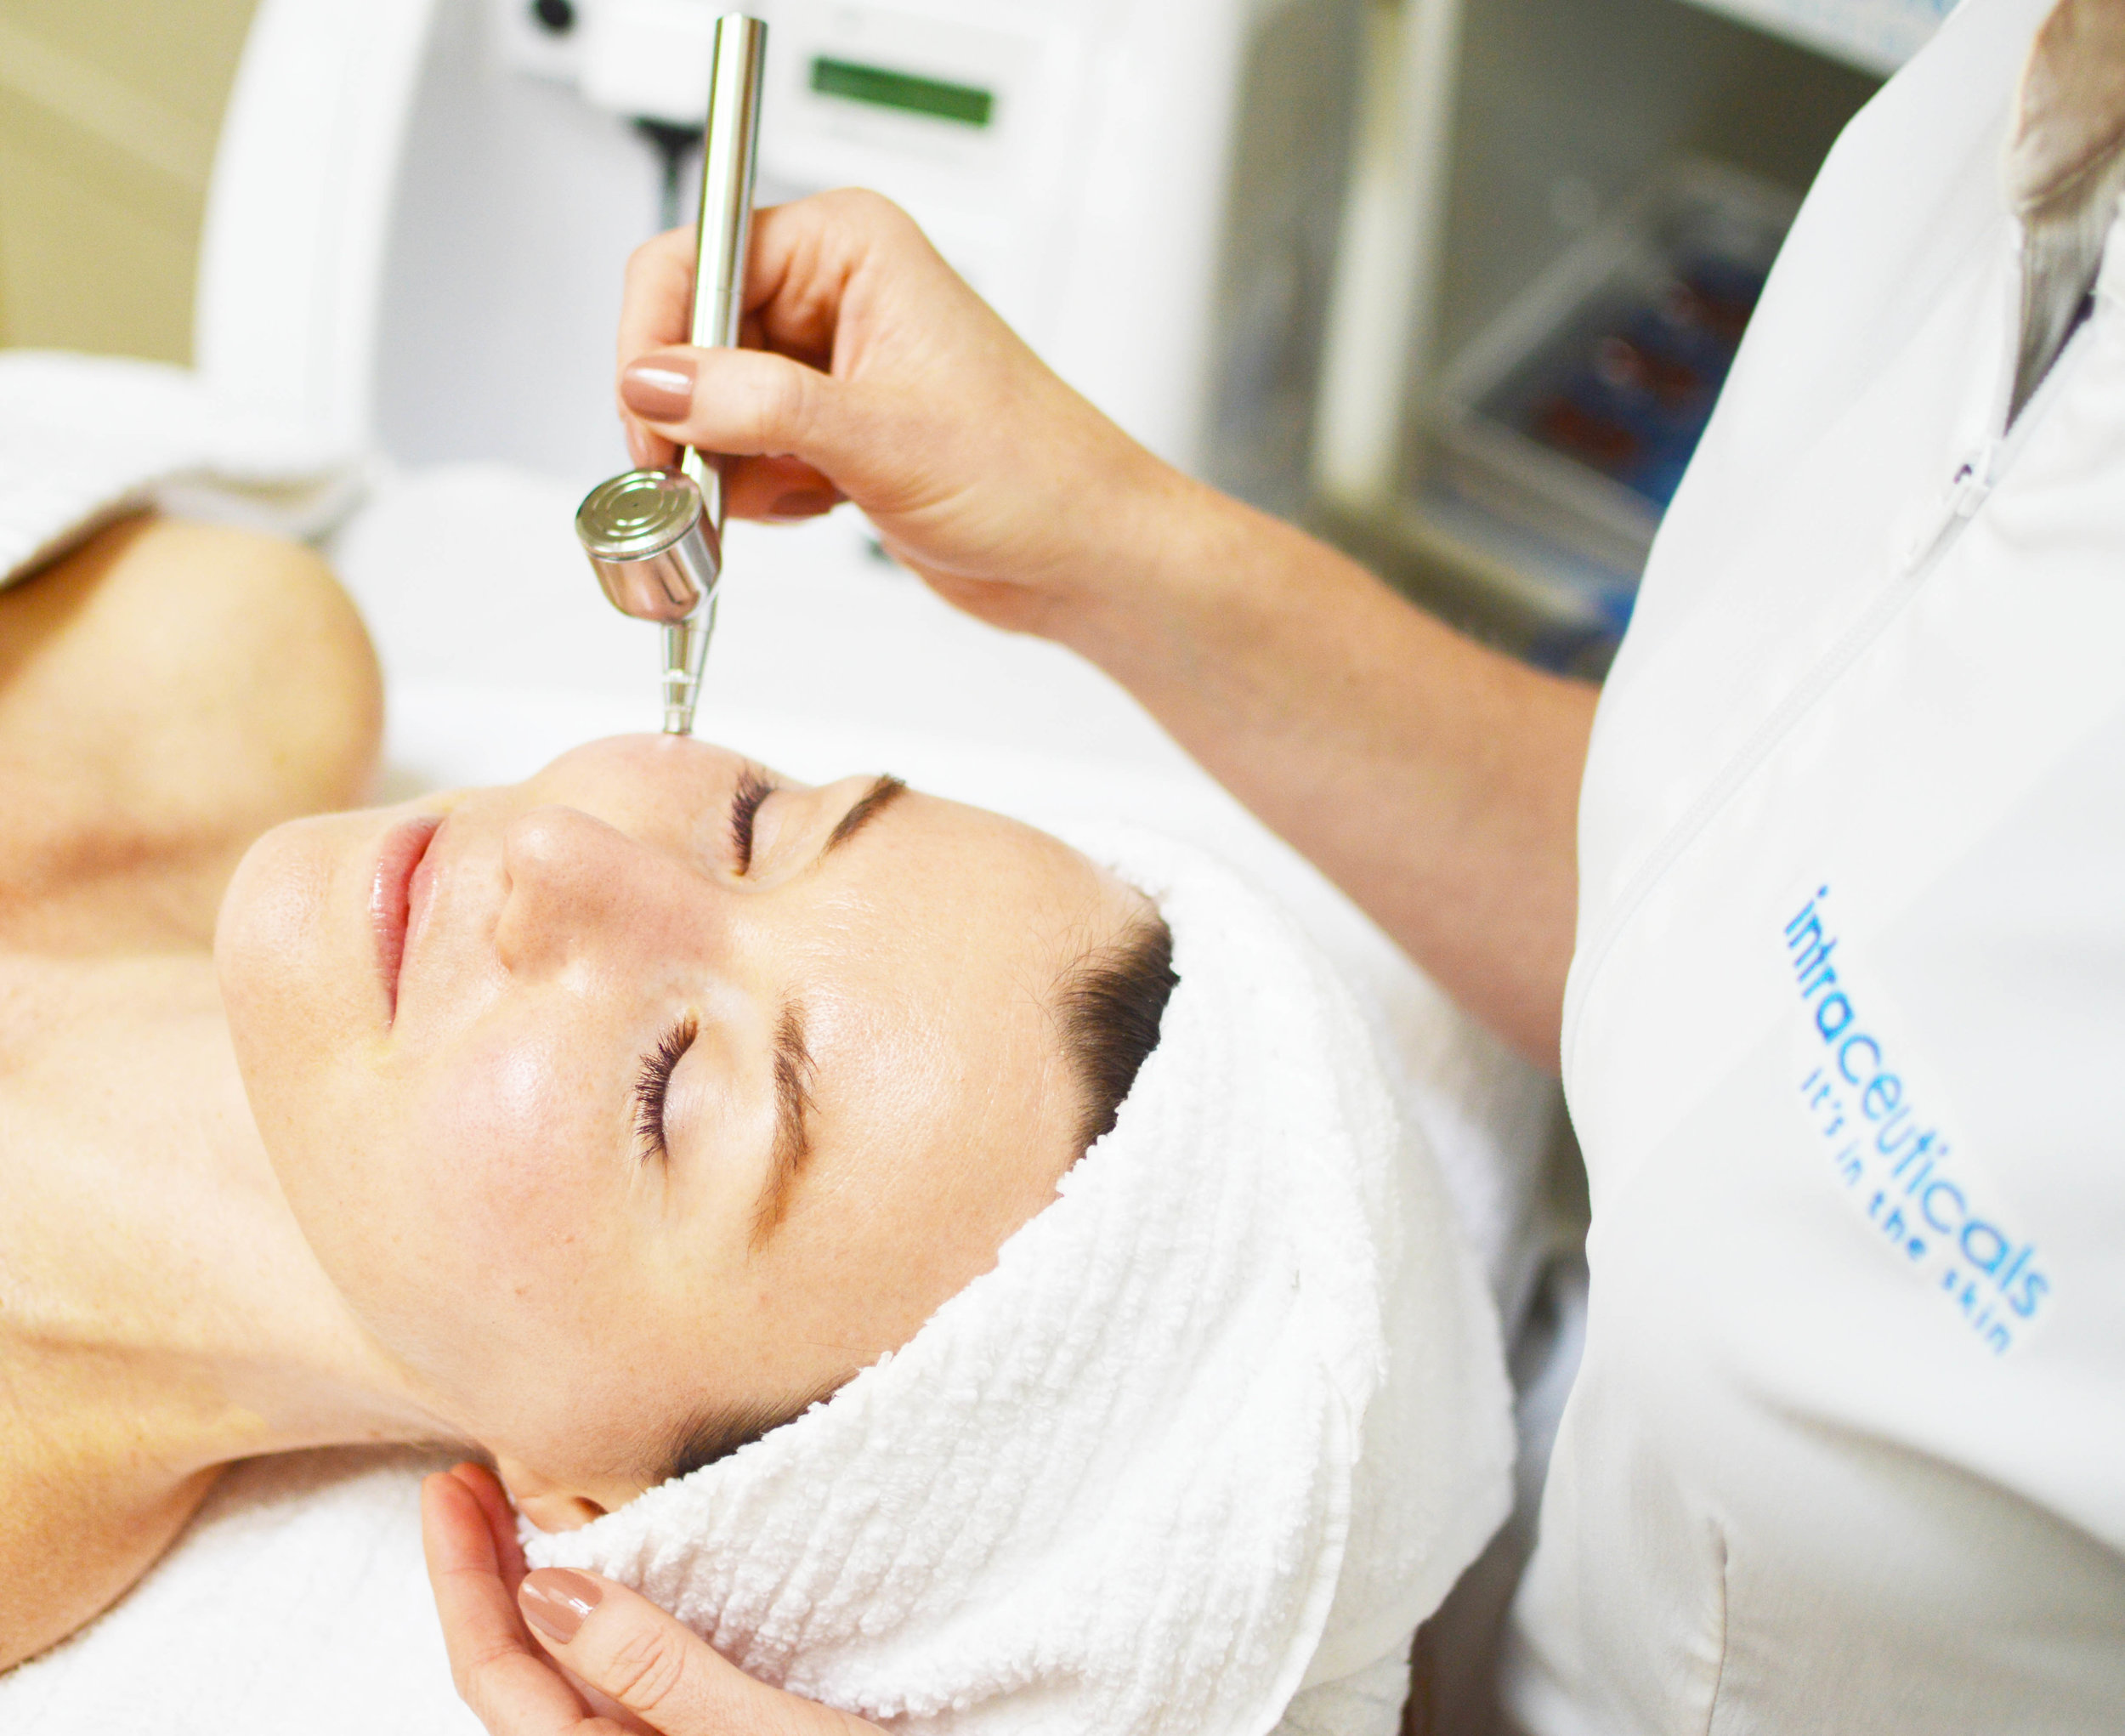 Intraceuticals Oxygen Infused Facials